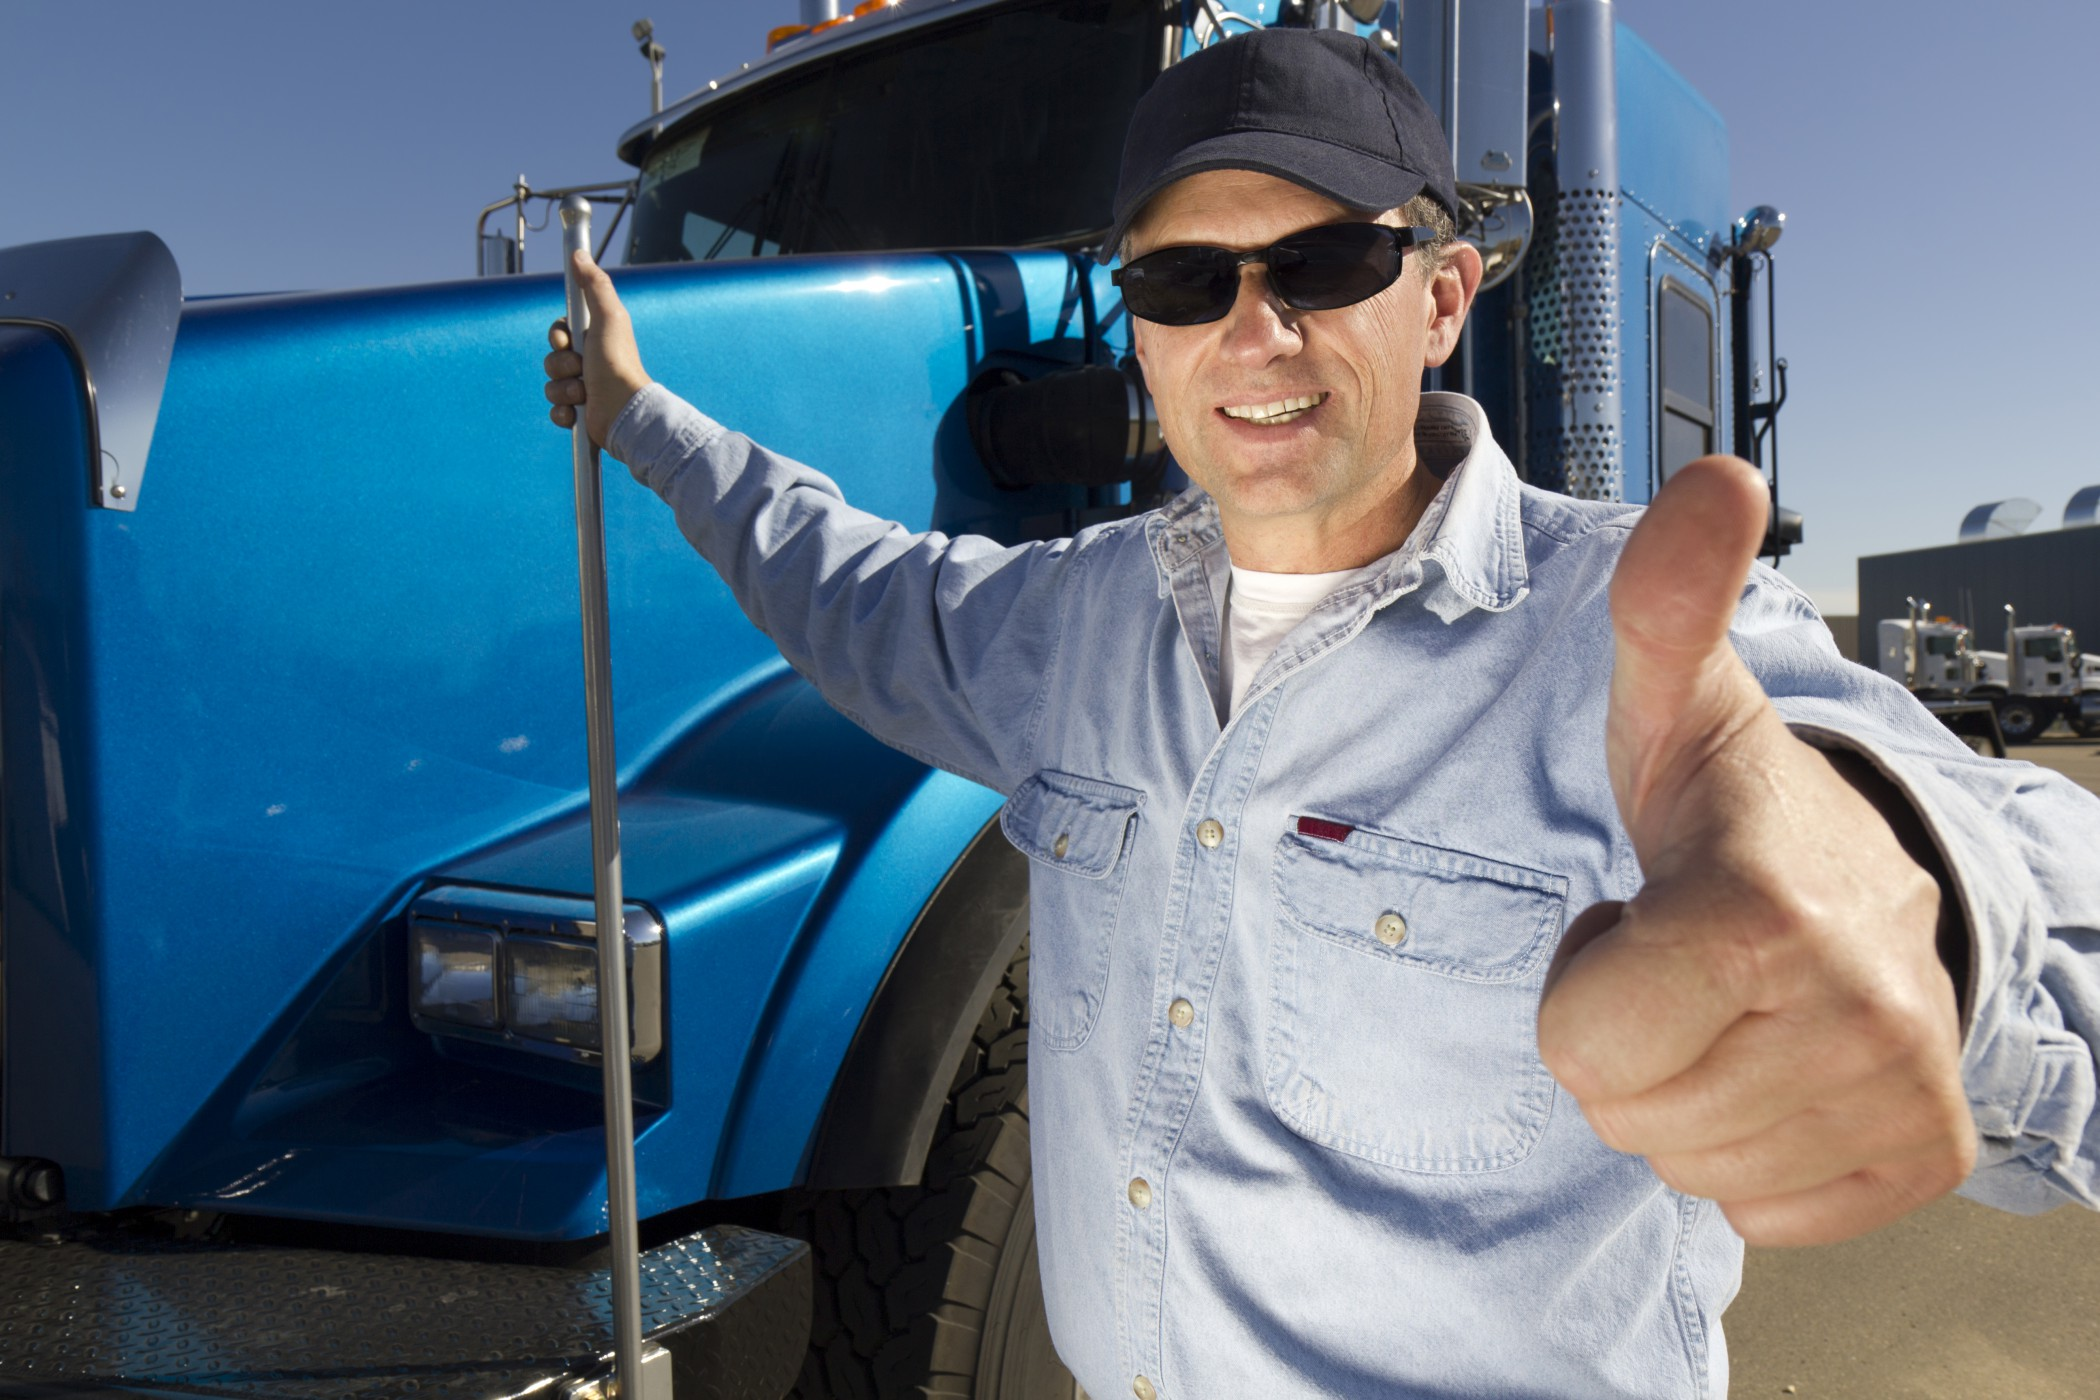 Truckers Get the Thumbs Up When it Comes to Safe Driving